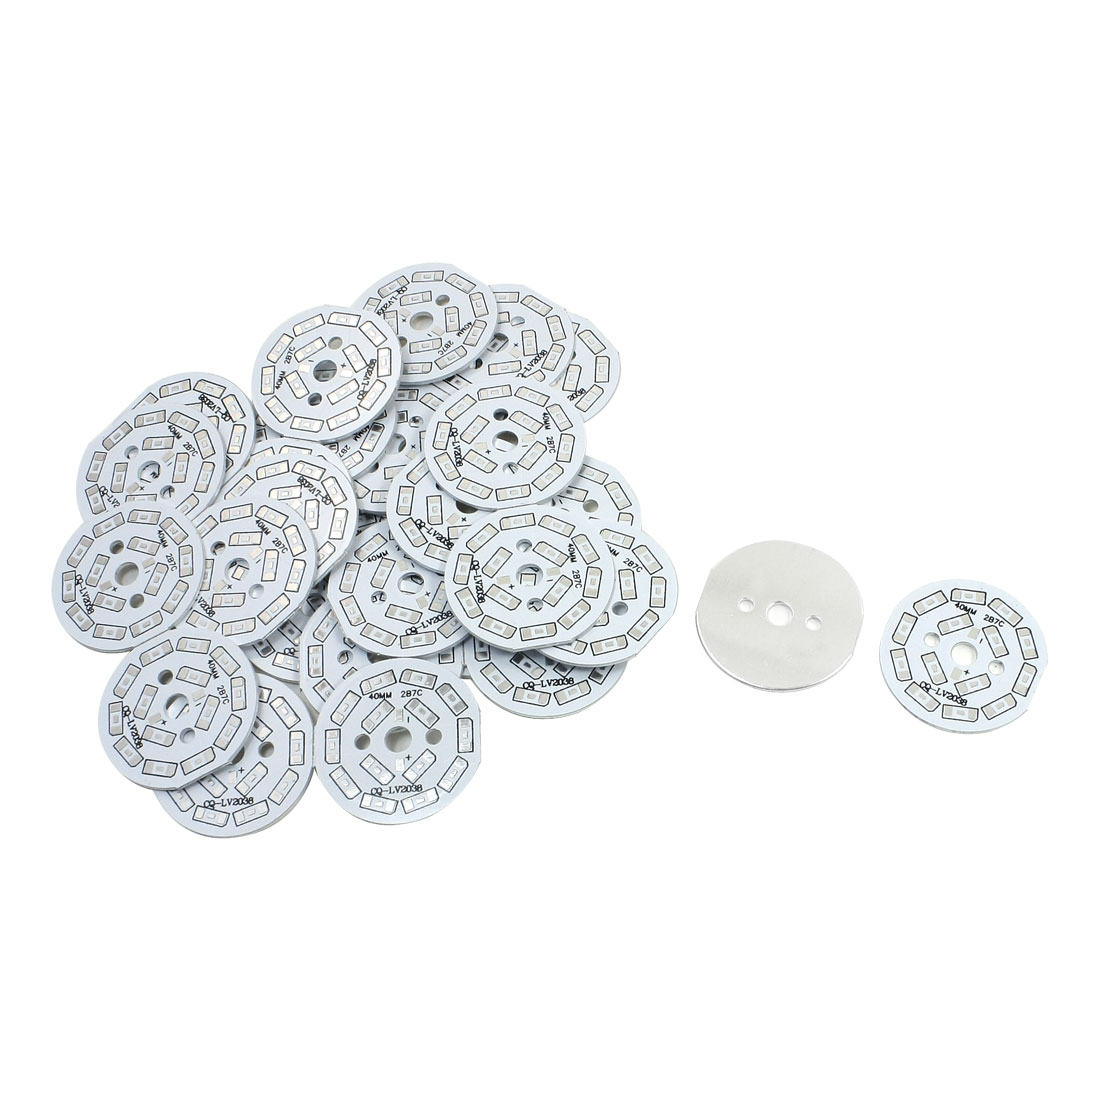 30Pcs 14 x 1/2W 5730 SMD LED High Power DIY Circle Aluminum PCB Circuit Board 40mm Diameter